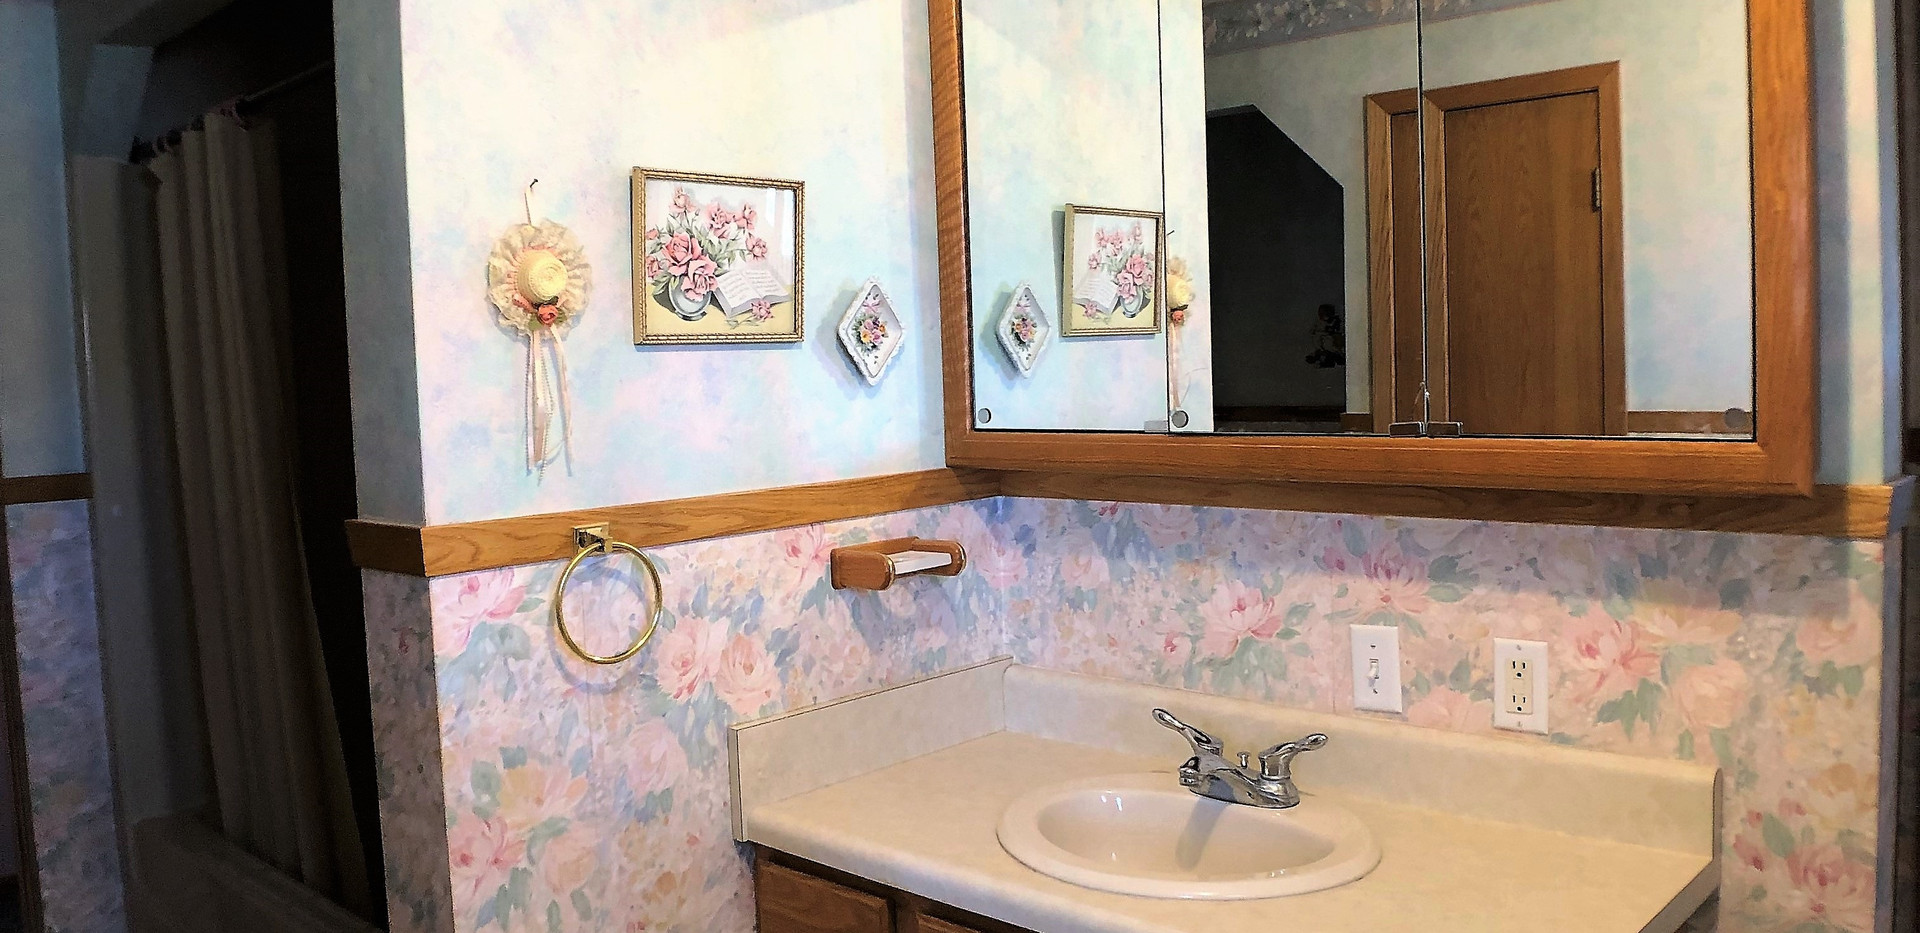 w14 - 407 Bathroom1.jpg